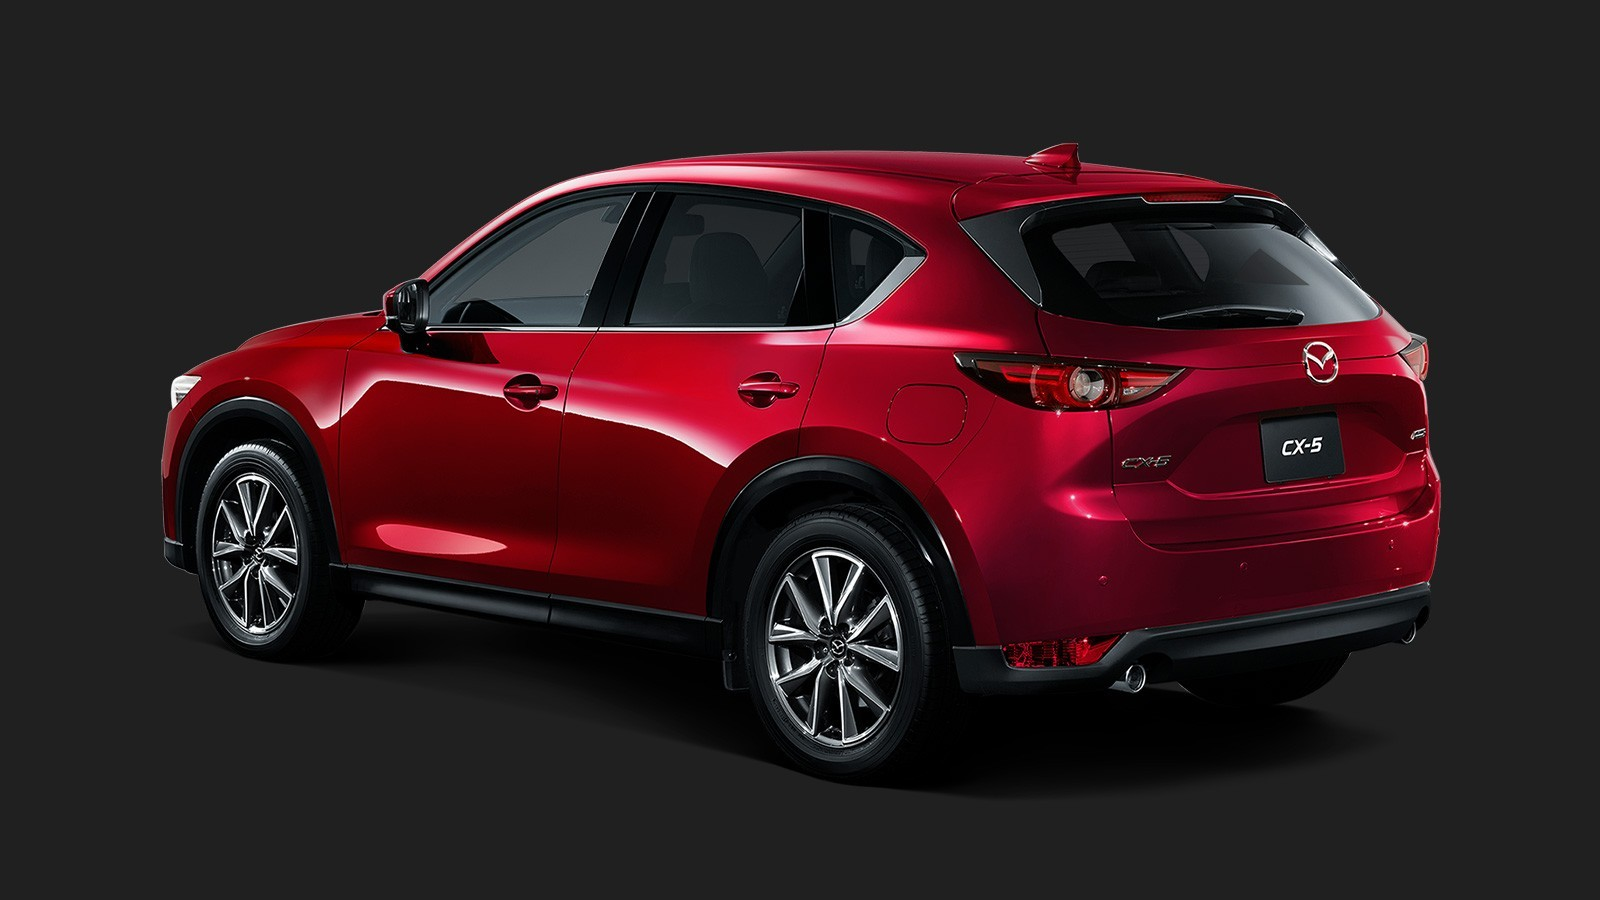 mazda cx 3 mps mazdaspeed hot crossover model rendered autoevolution. Black Bedroom Furniture Sets. Home Design Ideas